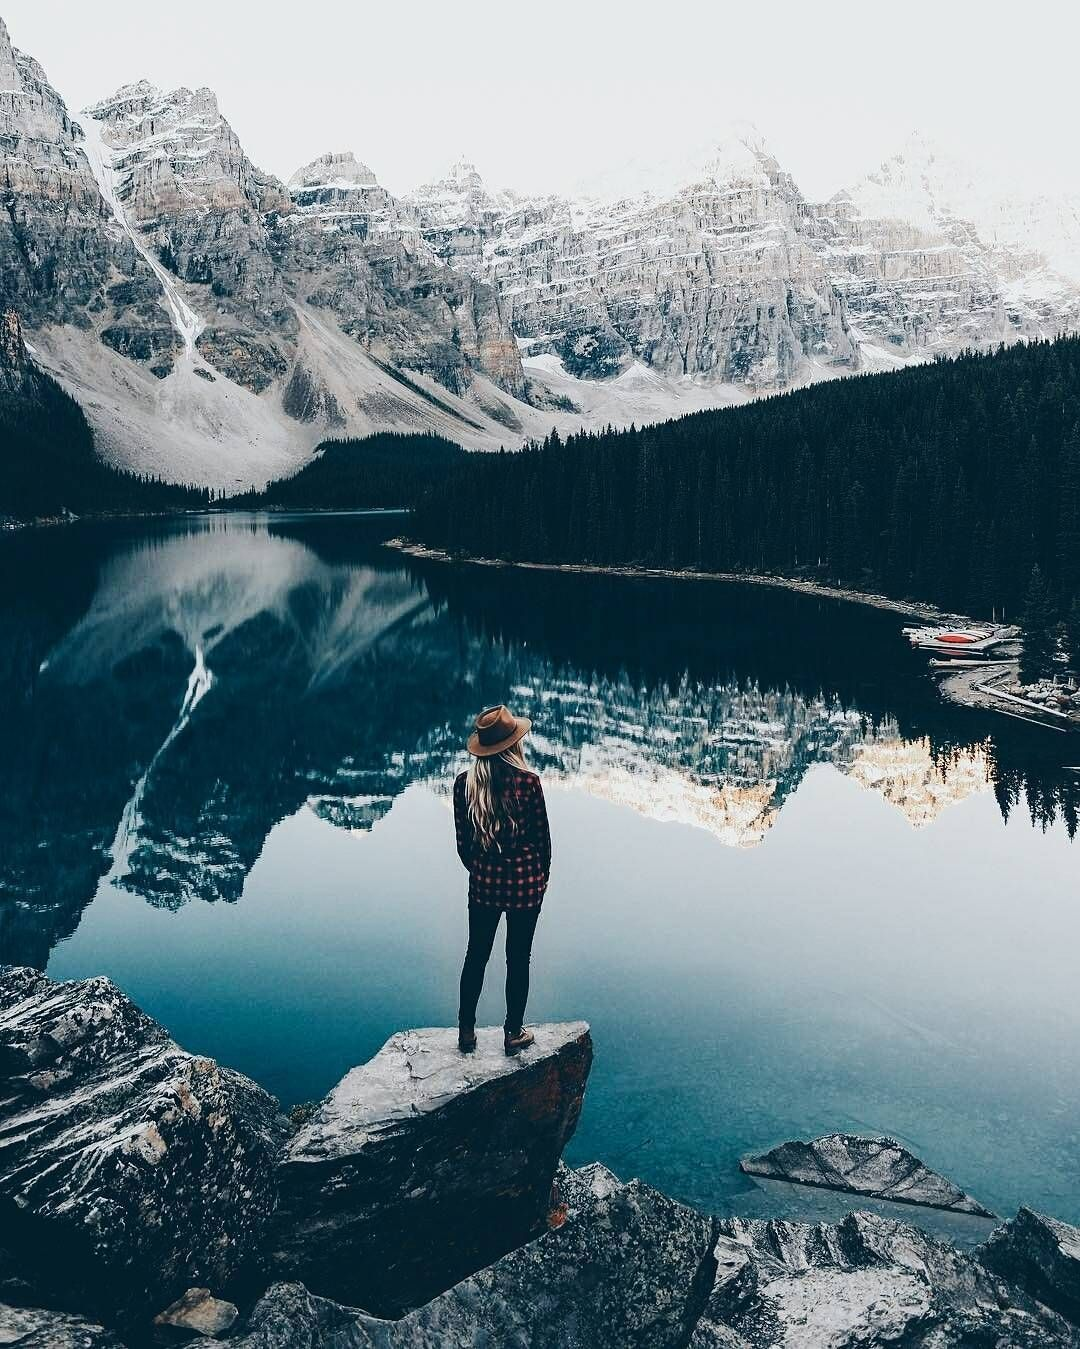 "Man of Many on Instagram: ""@samciurdar founder of @adventurethatislife capturing the beauty of a calm Moraine Lake in Canada"" #granolagirlaesthetic"